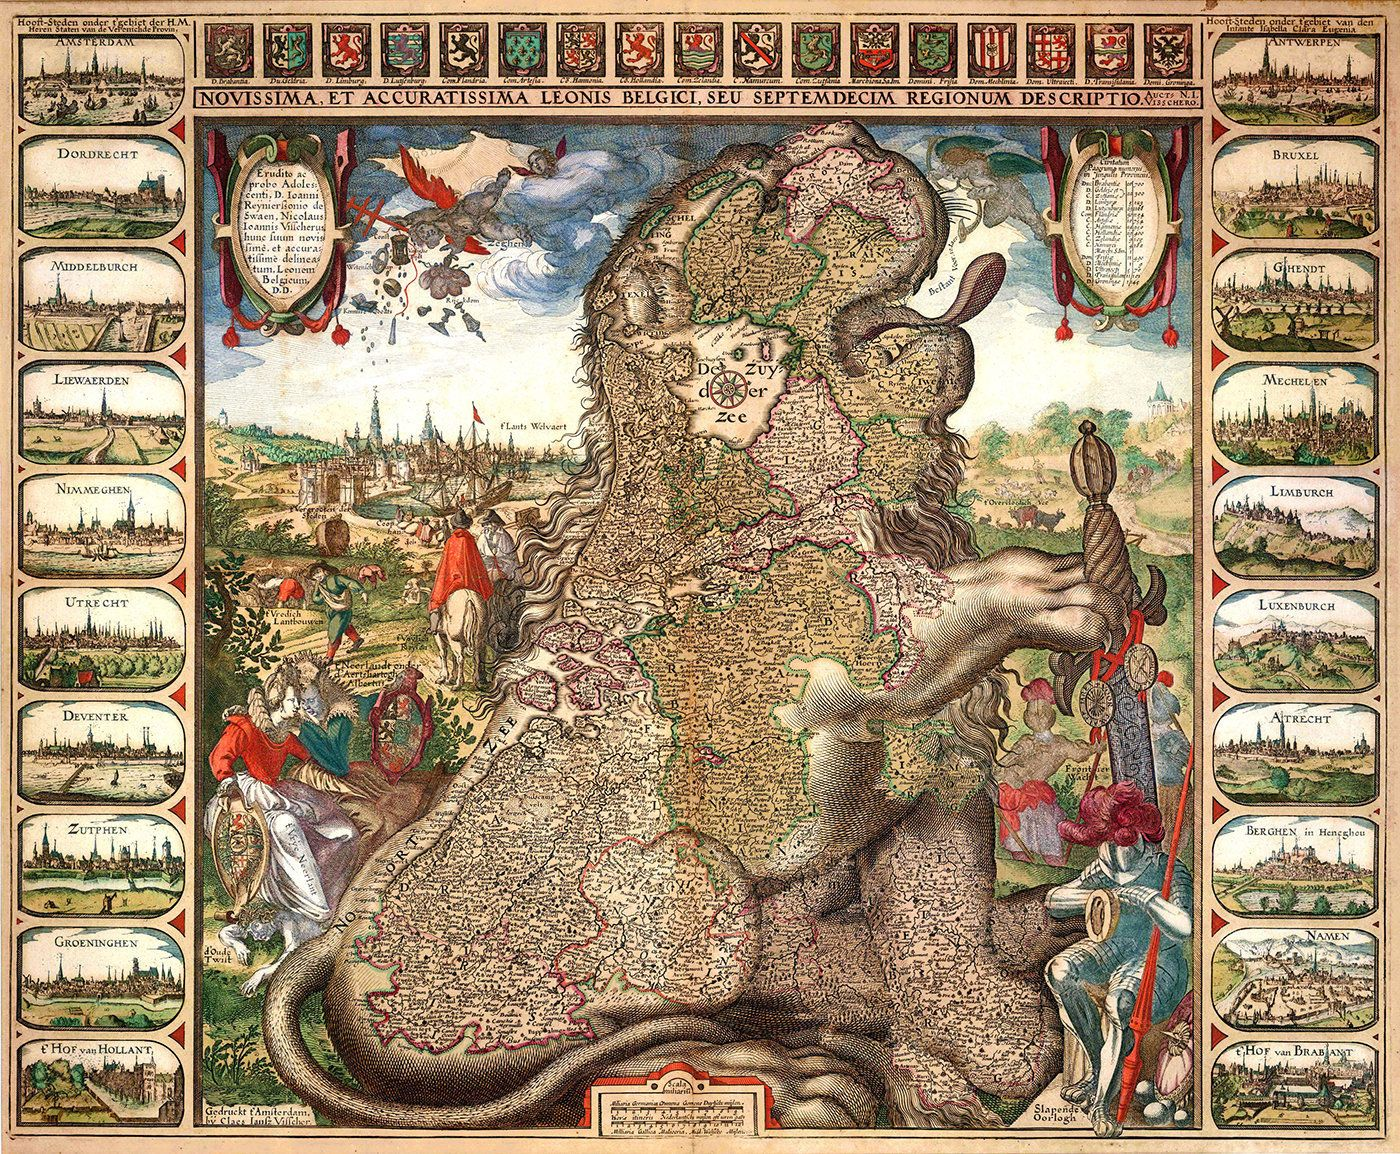 The Sitting Leo Belgicus, 1611, by the Dutch mapmaker Claes Janszoon Visscher. Only two copies are known of this edition – one of the rarest and most beautiful of the seventeenth century. Credit: Sanderus Antiquariaat.